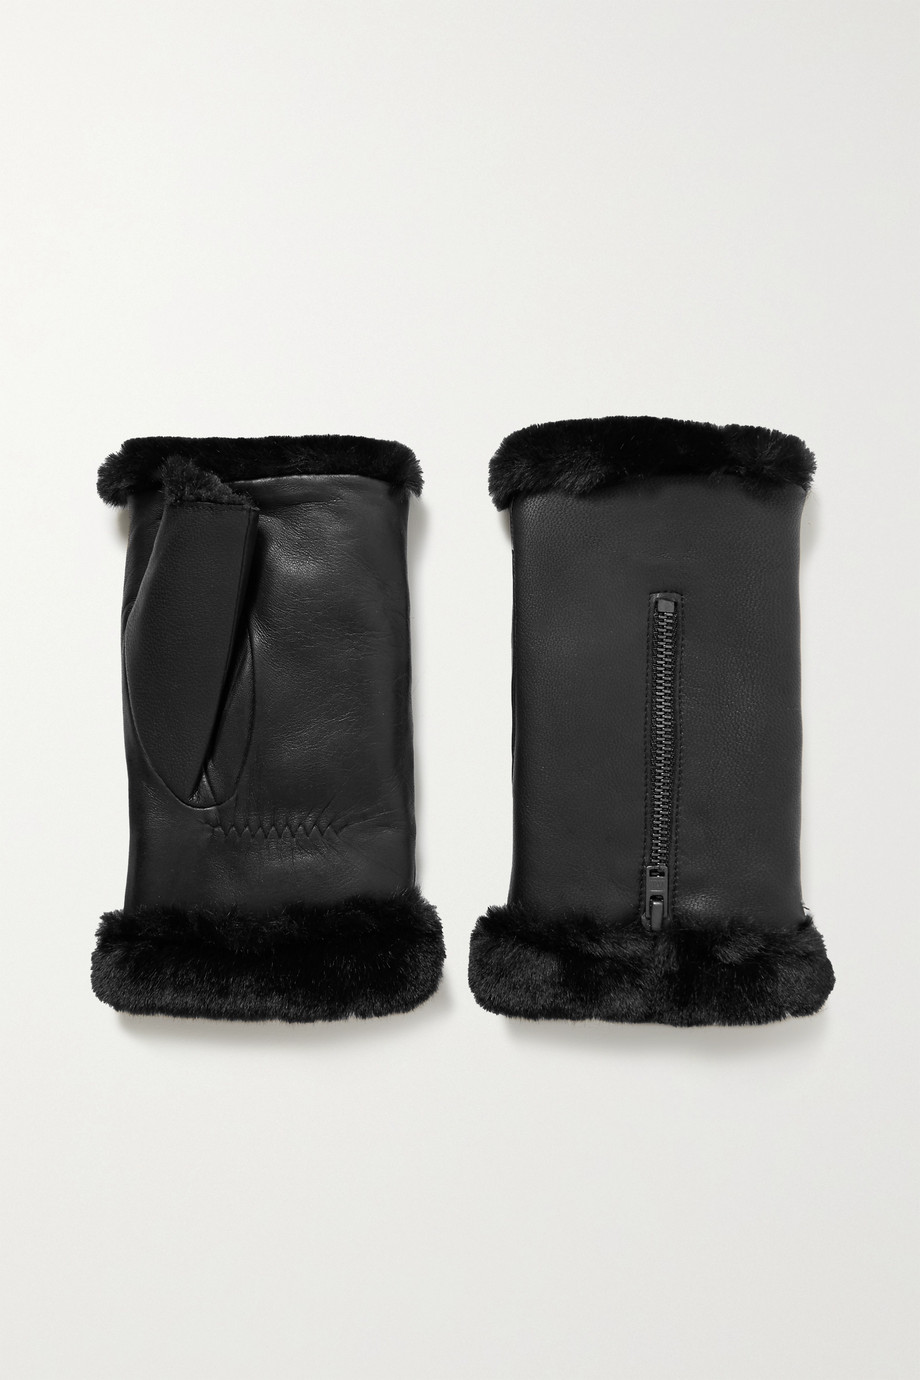 Agnelle Barbara faux fur-lined leather wrist warmers